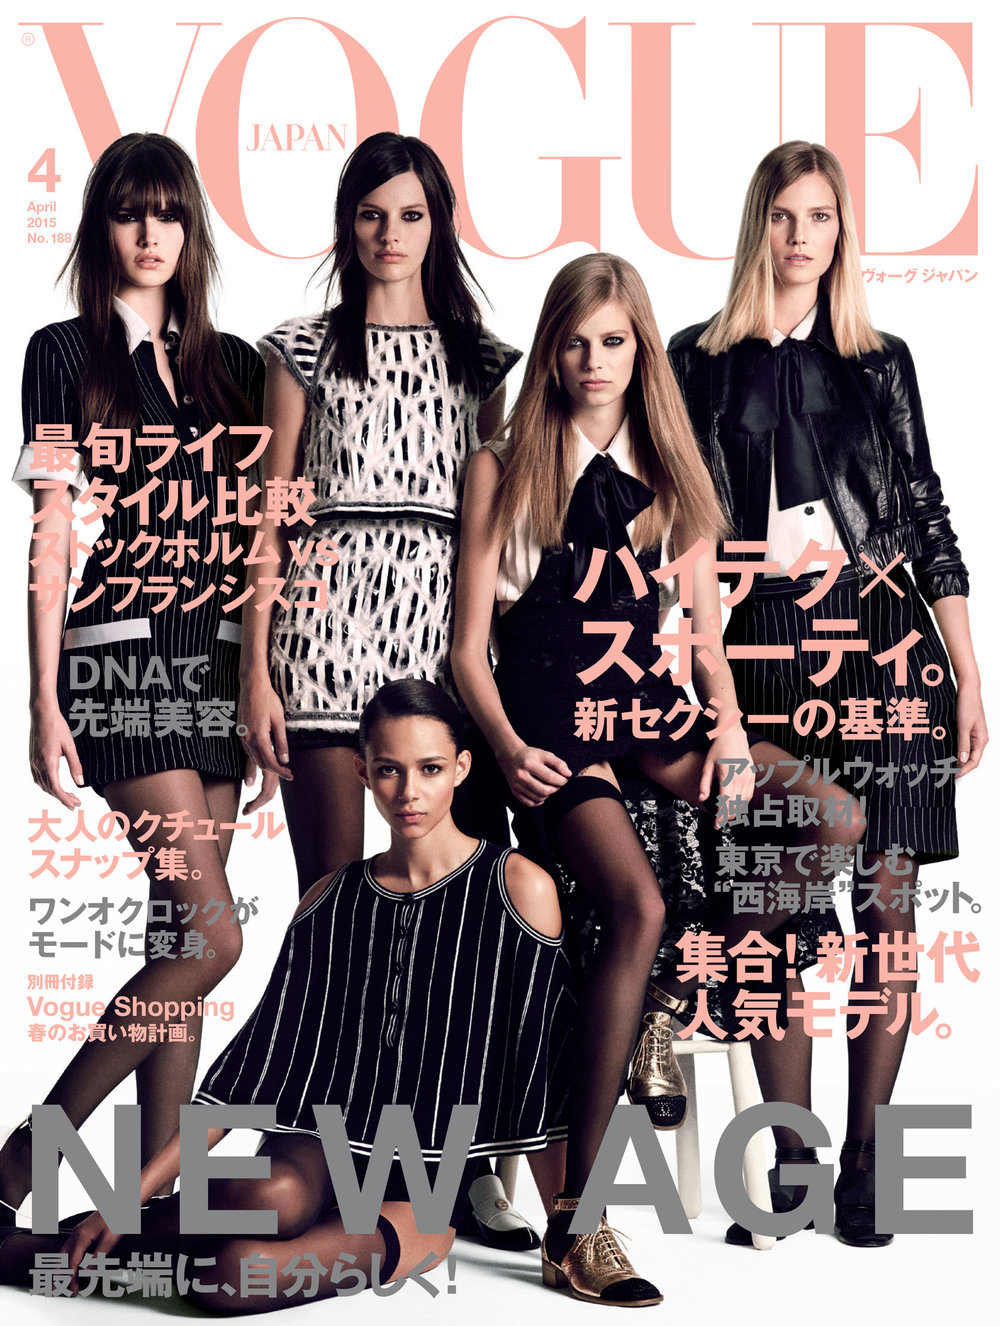 Giovanna-Battaglia-Vogue-Japan-March-2015-New-Age-Cover-1.jpg